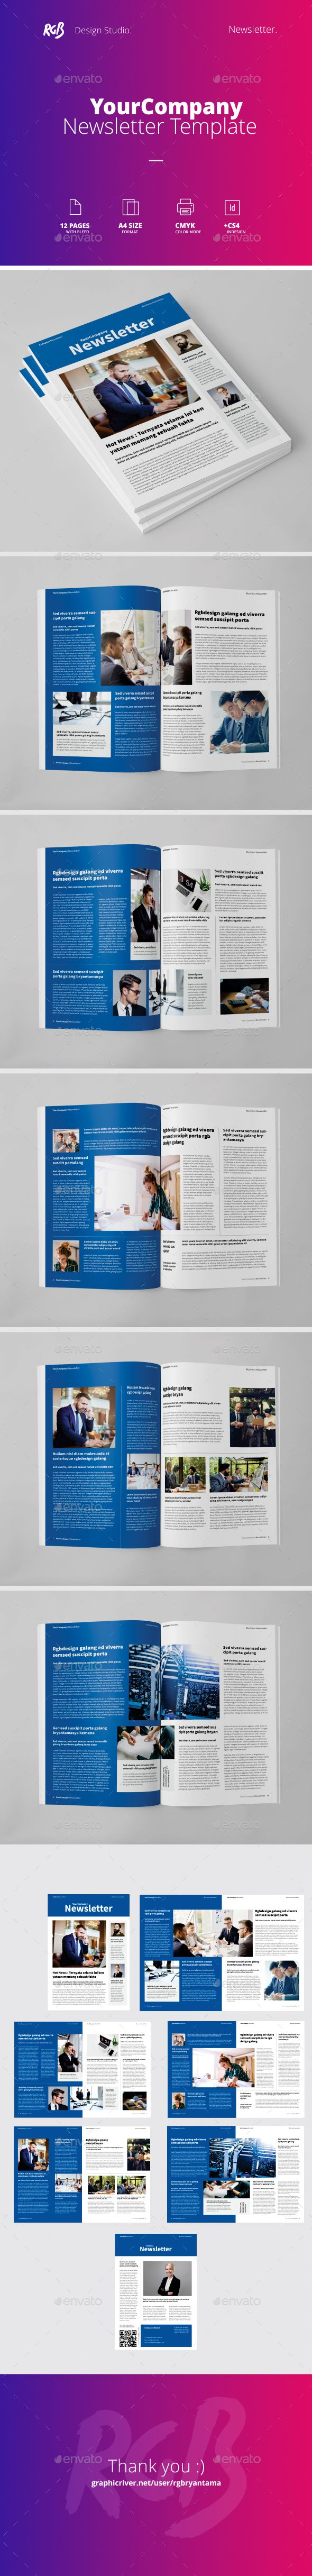 Multipurpose Newsletter Template Indesign Indd 12 Unique Pages